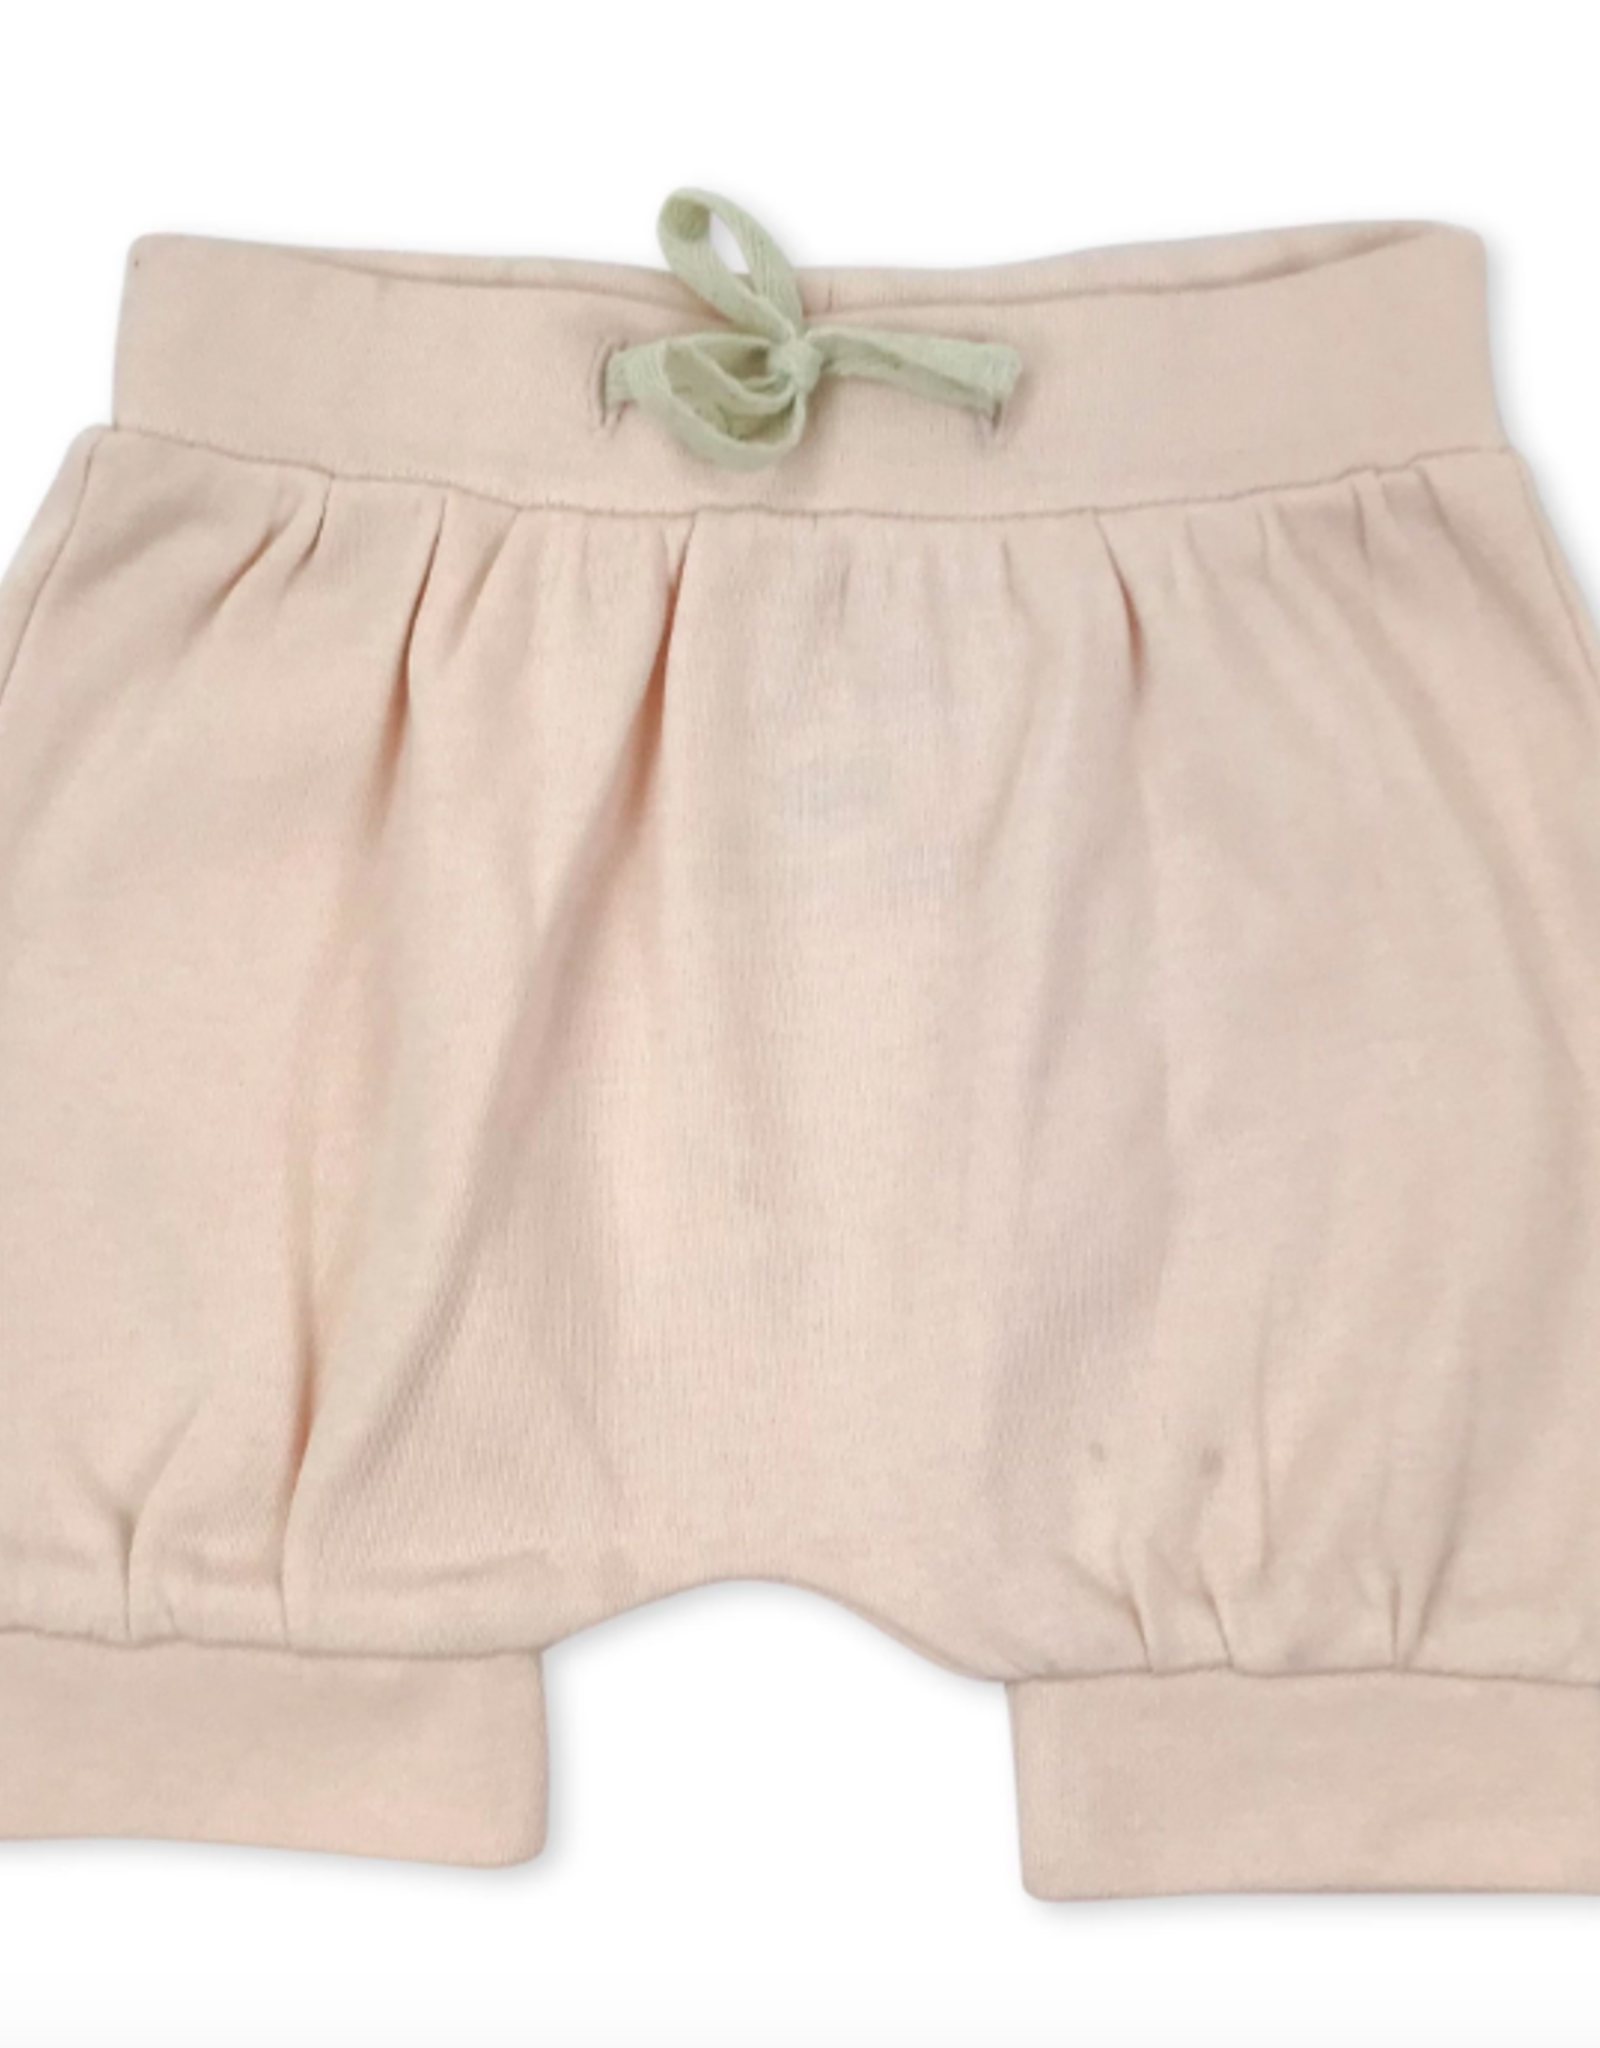 Finn + Emma Bloomer Shorts